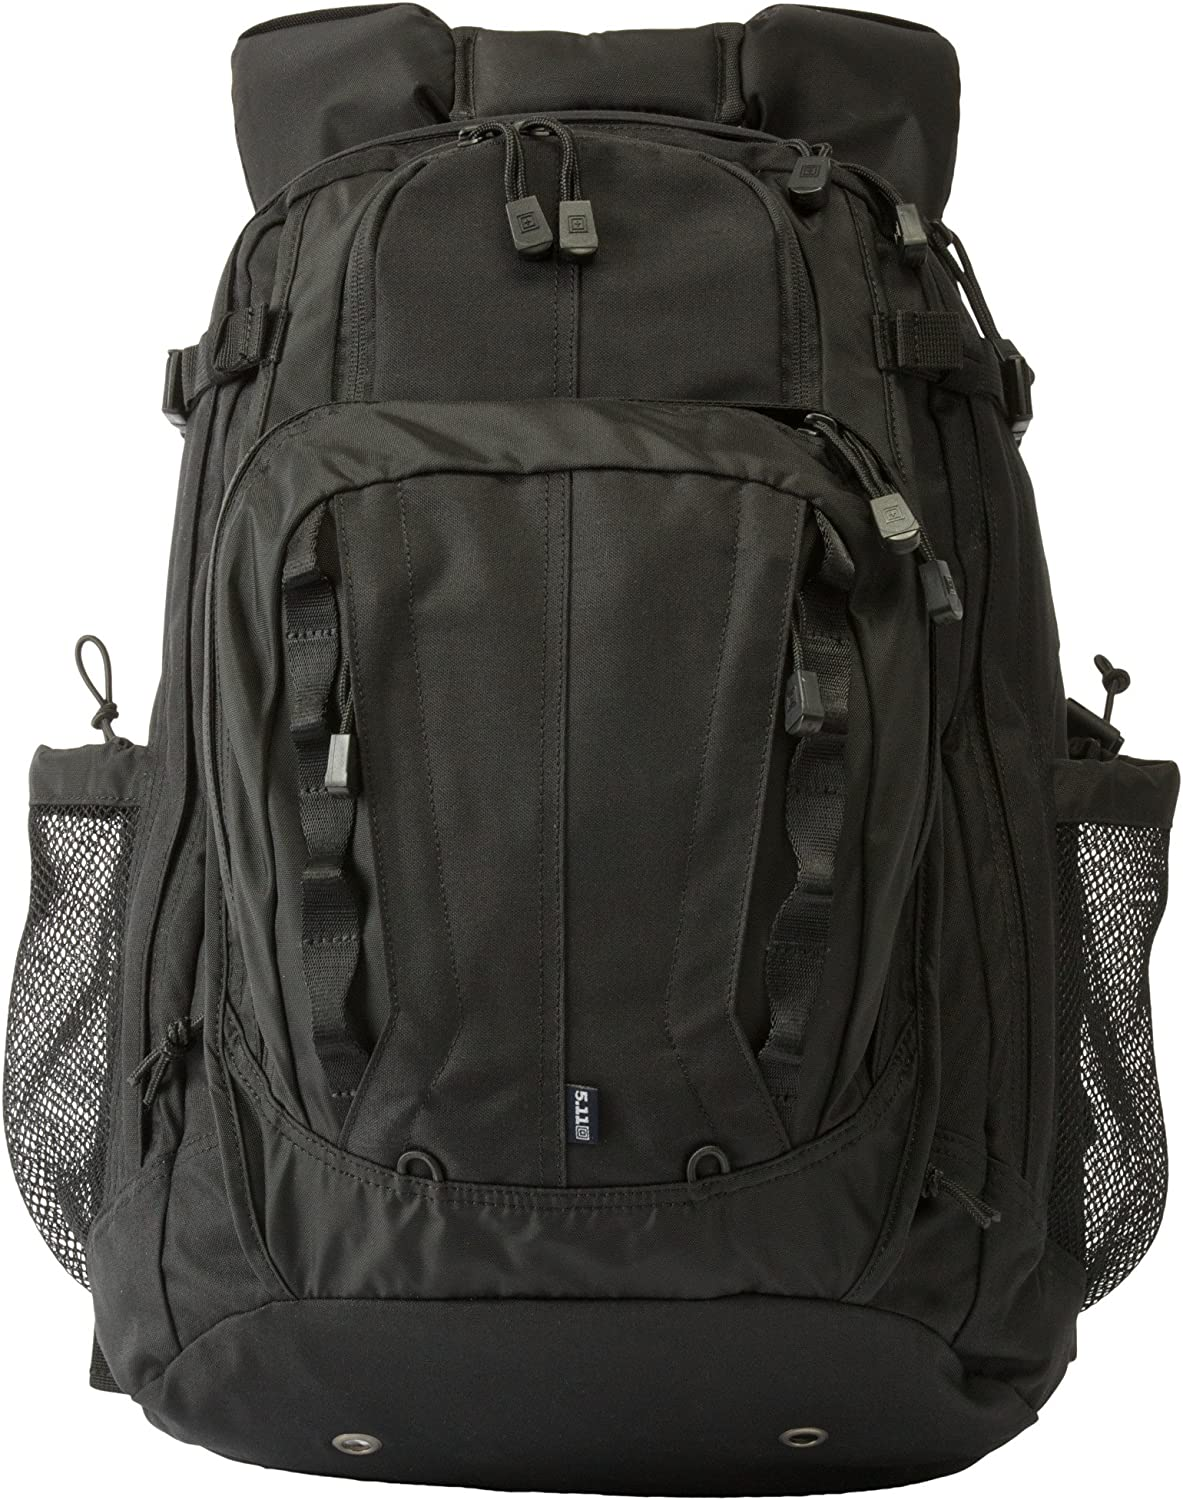 5.11 Tactical COVRT18 Covert Military Backpack, Large Assault Rucksack Pack, Style 56961, Black : Clothing